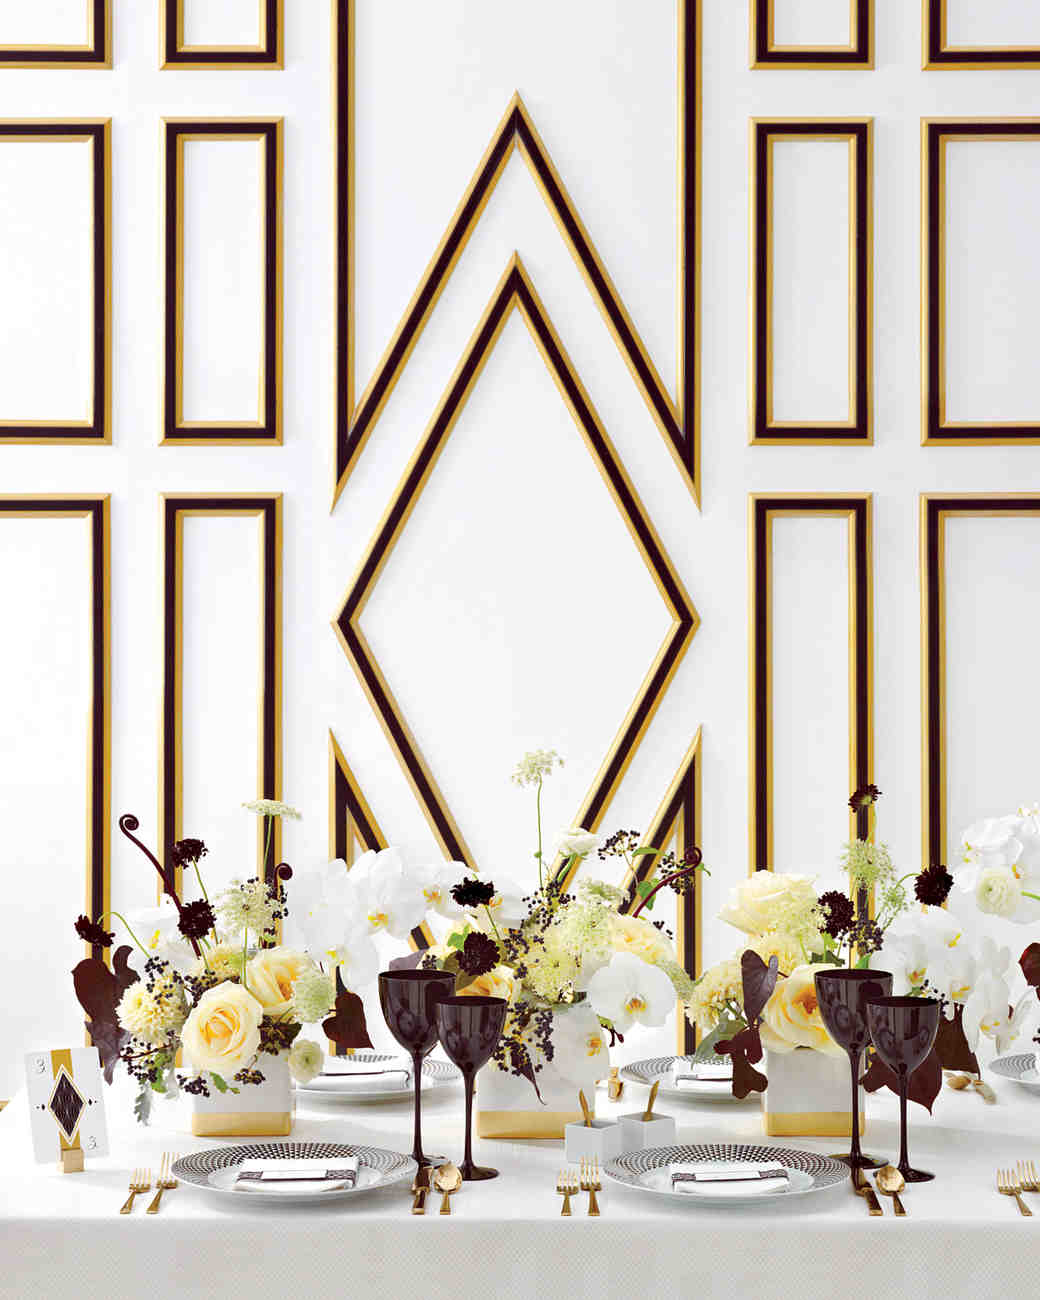 Black And Gold Wedding Decorations: Wedding Colors: Black, White, And Gold